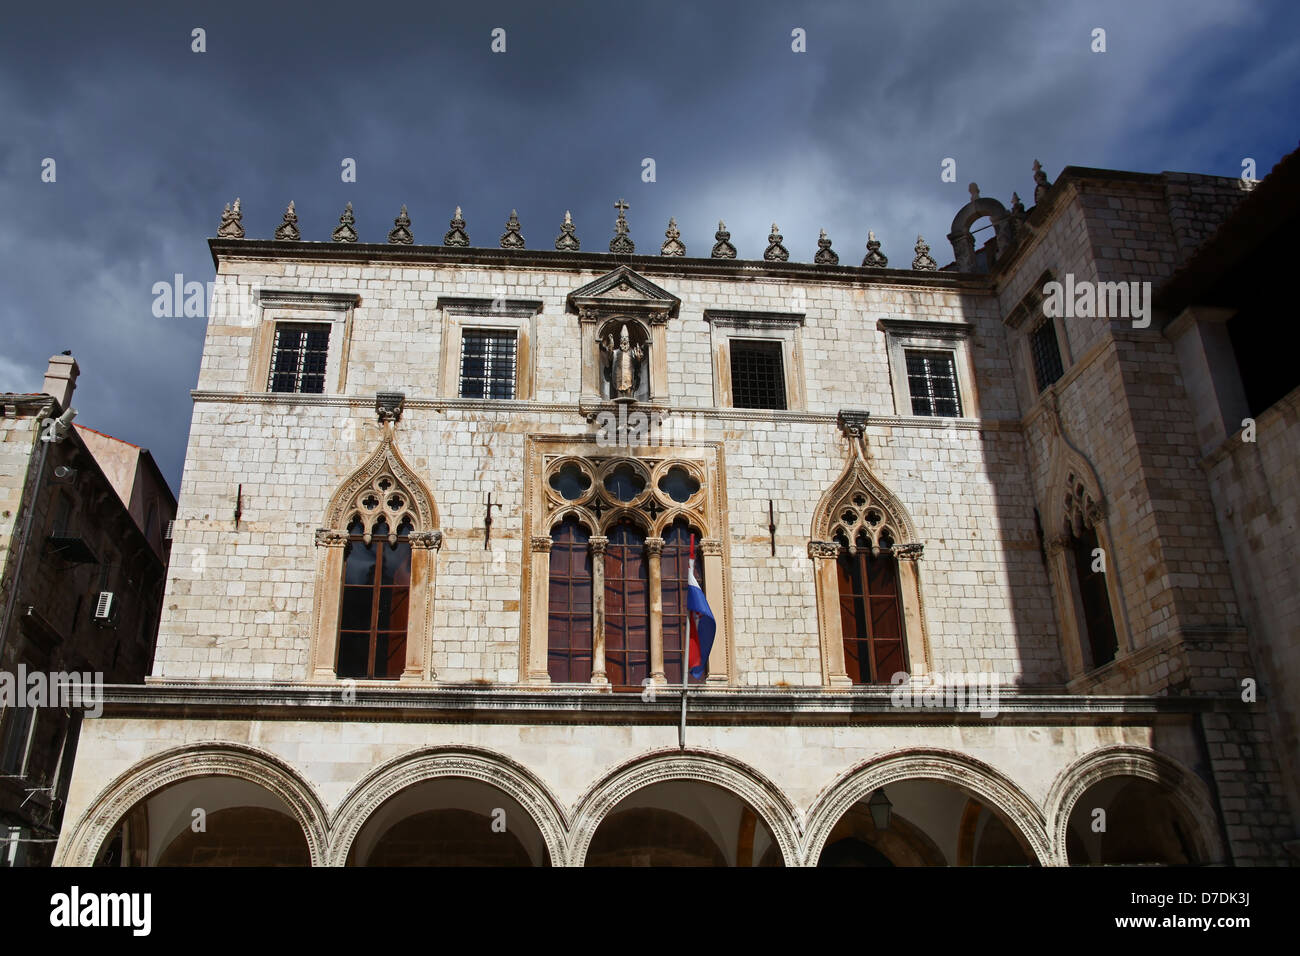 View to the historic Sponza palace in Dubrovnik with dramatic sky in background - Stock Image